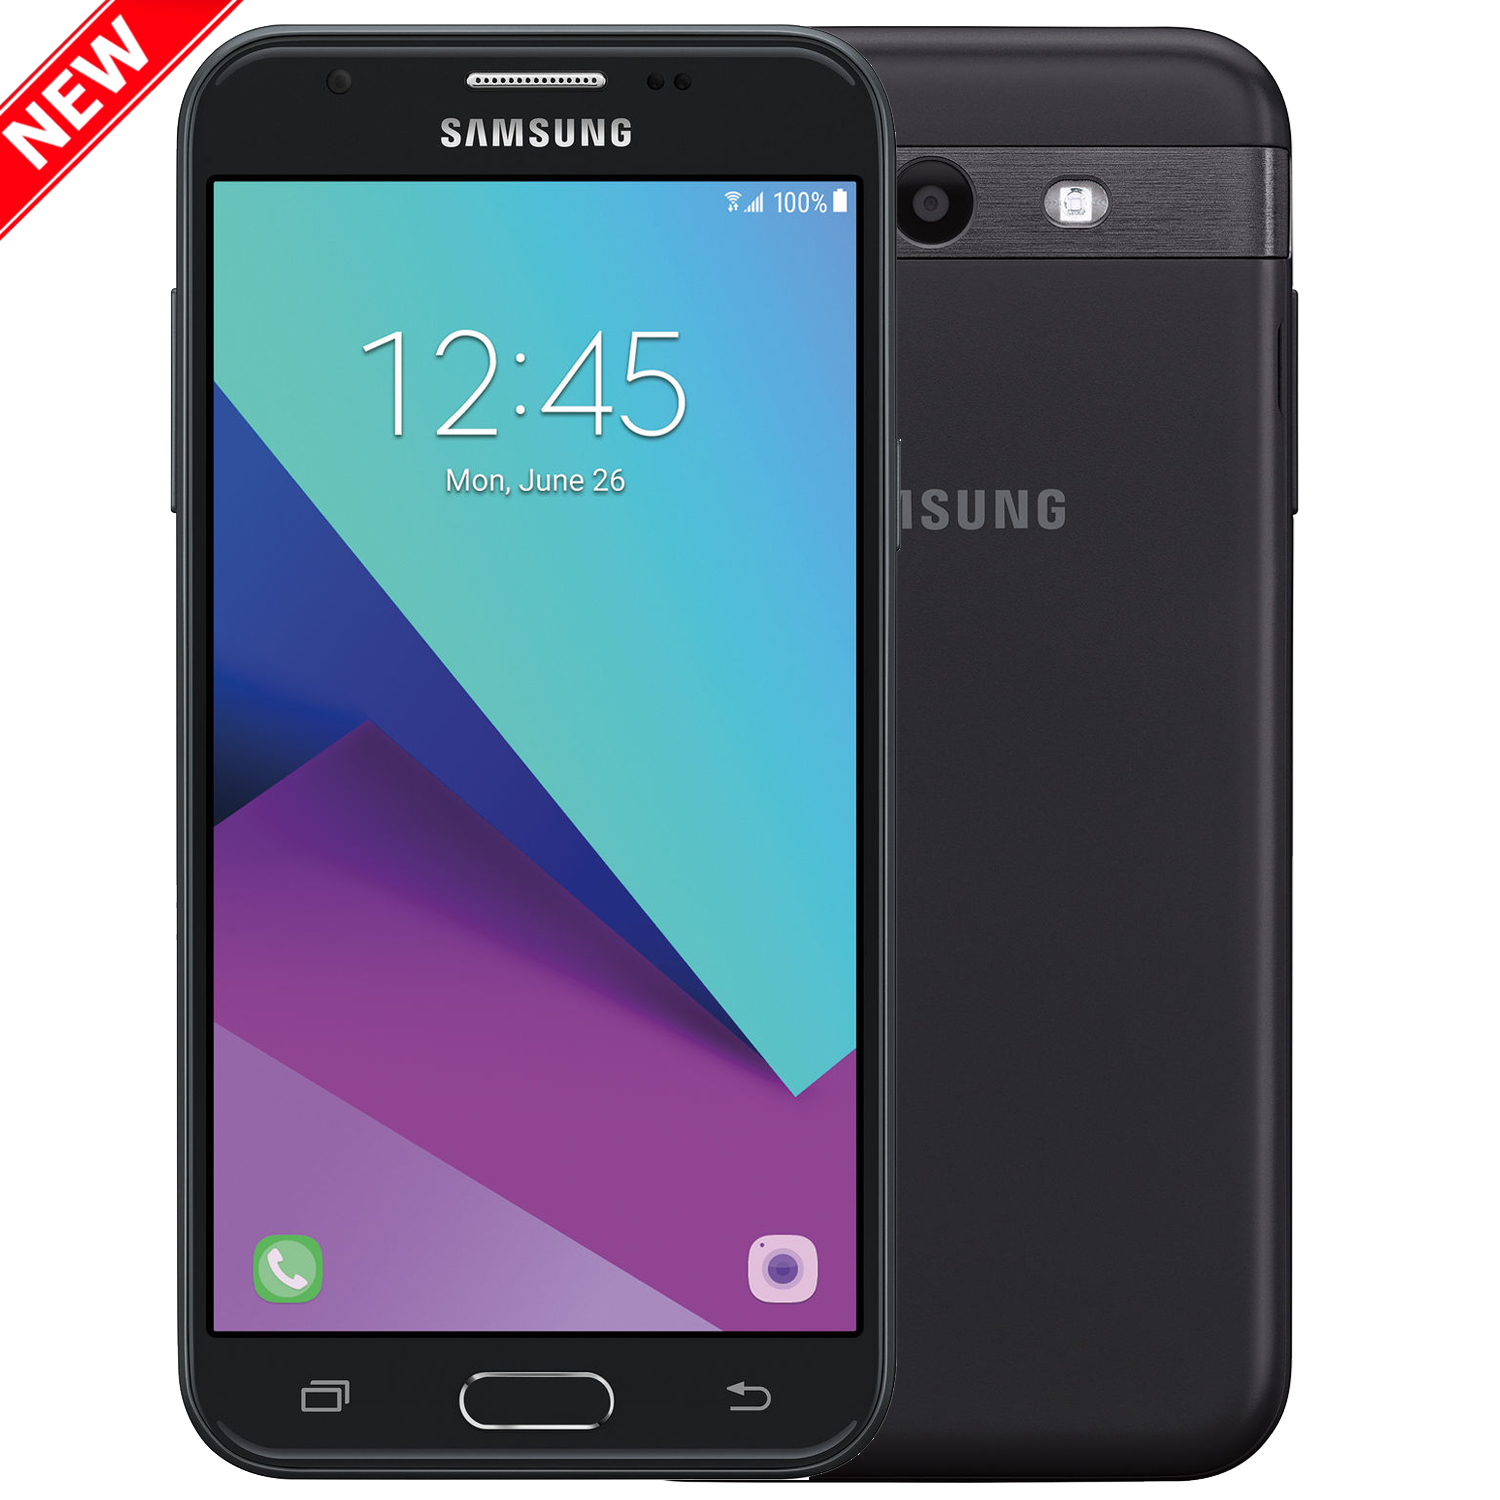 "New Galaxy Express Prime 2 16GB J327A GSM Unlocked 4G LTE 5"" TFT Capacitive touchscreen 1.5GB RAM 5MP Smartphone by Samsung  - Black - USA Warranty"